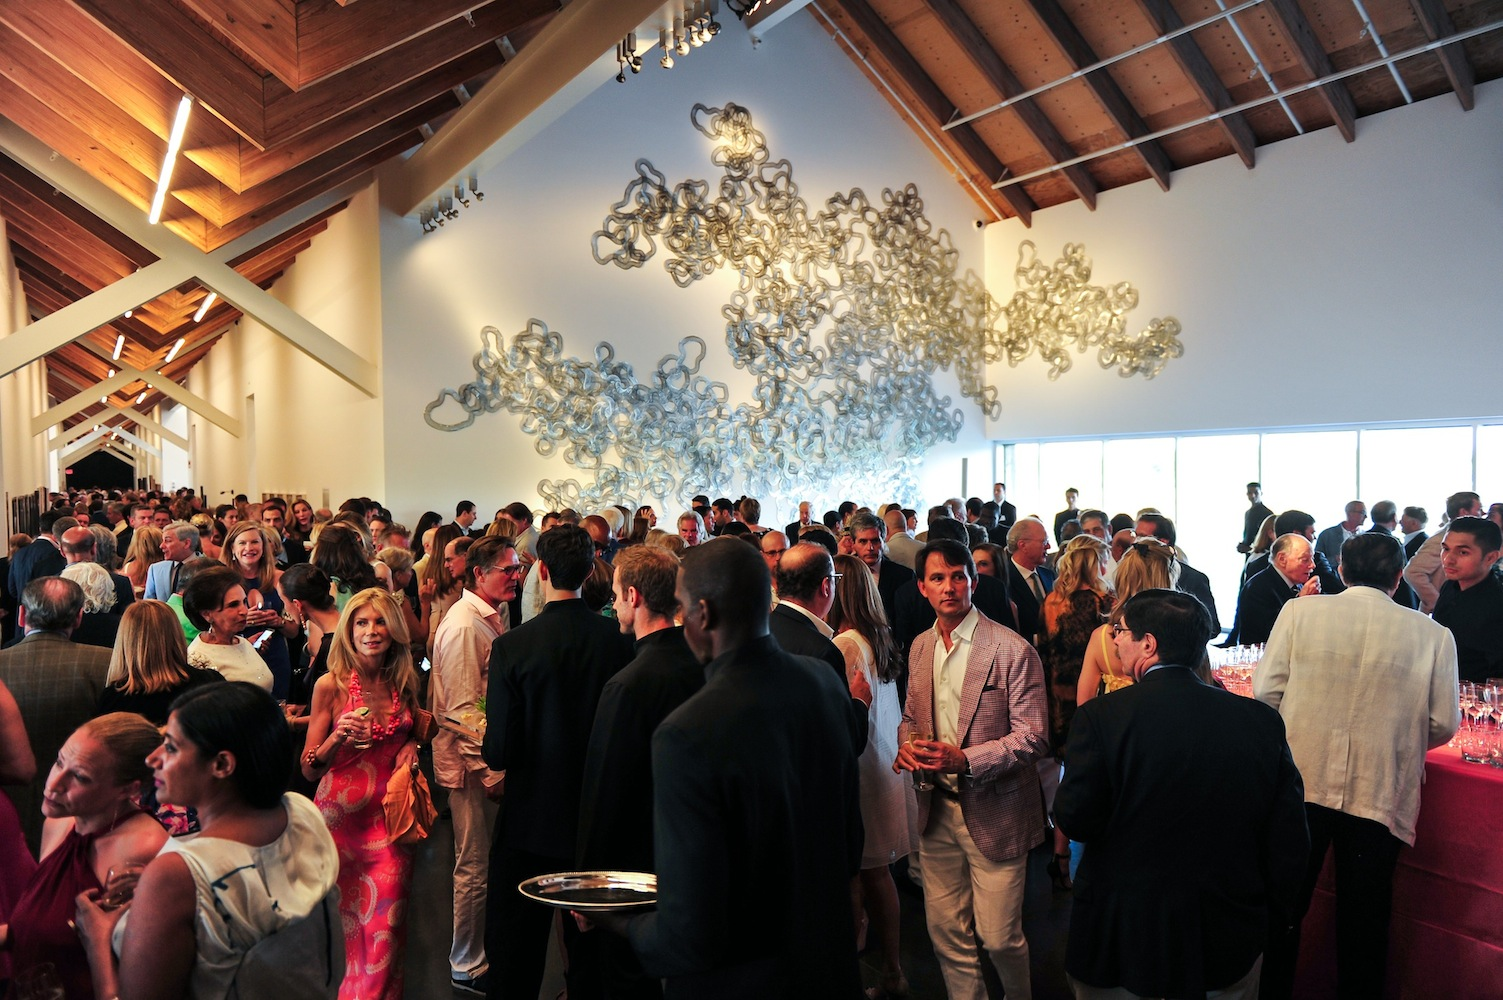 PARRISH ART MUSEUM's Midsummer Party-mosphere